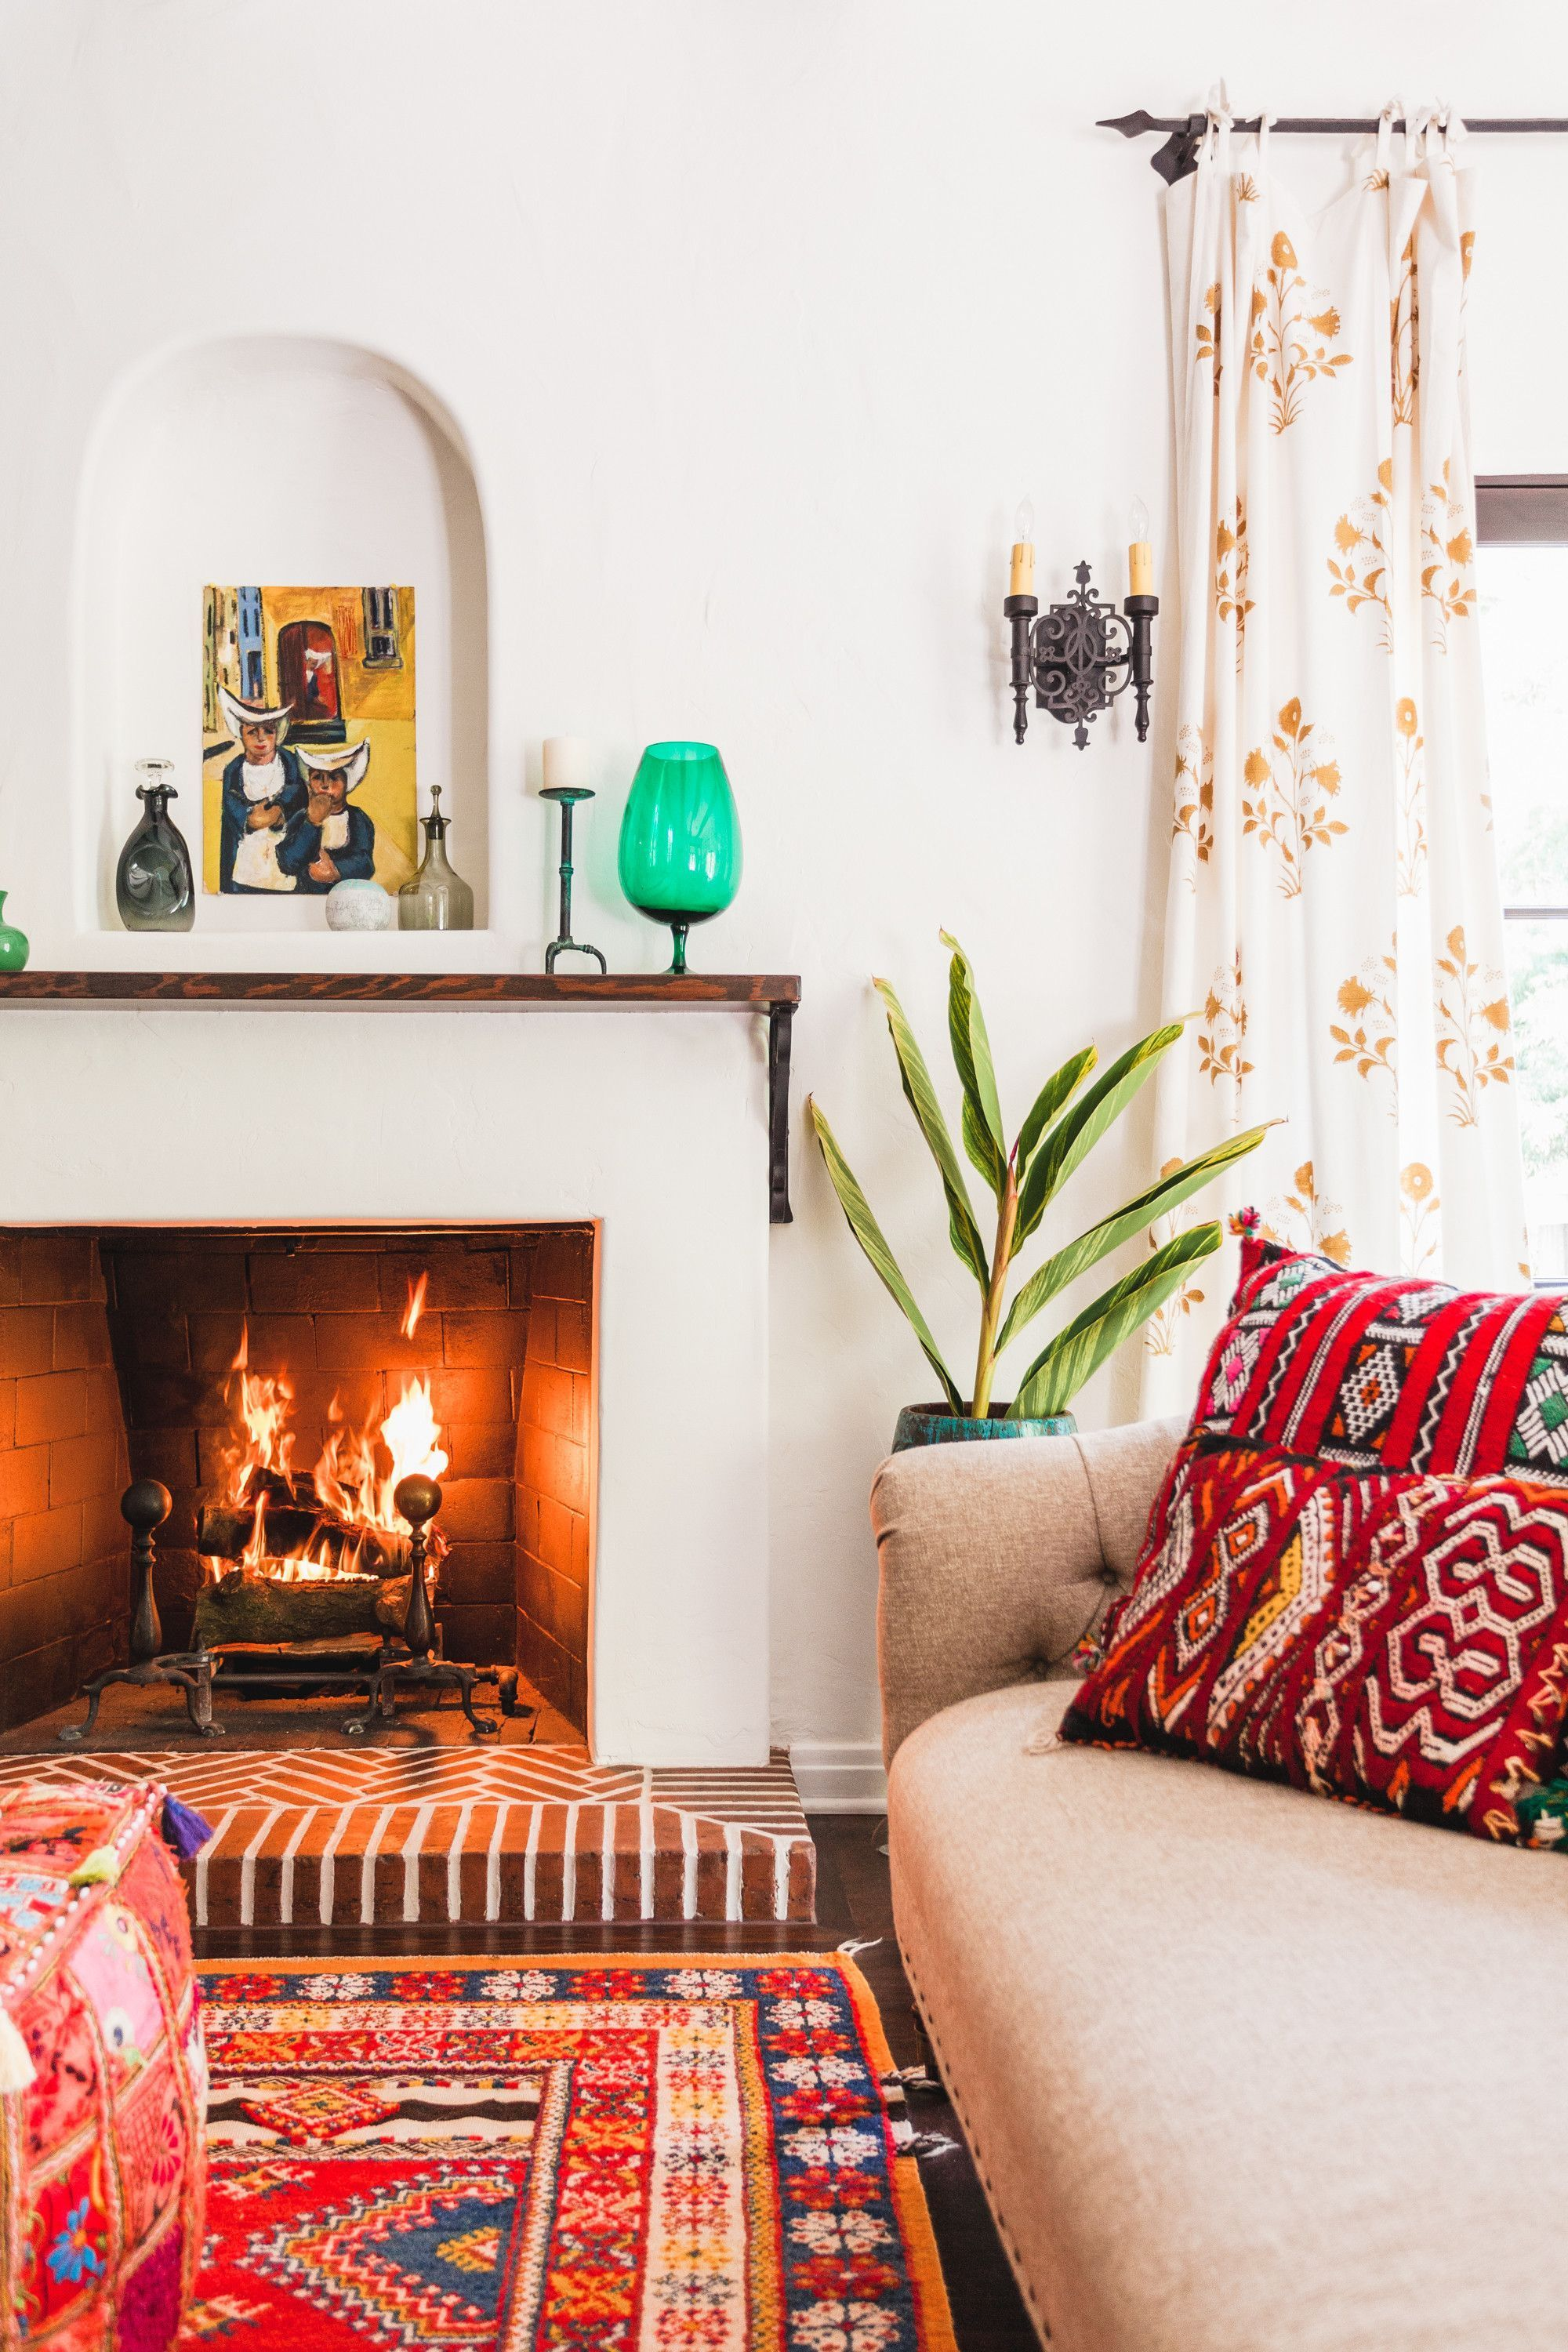 Bohemian Decorating Is For Those Who Want Their Homes Full Of Life Culture And Interesting Item Spanish Home Decor Bohemian Living Room Decor Living Room Red